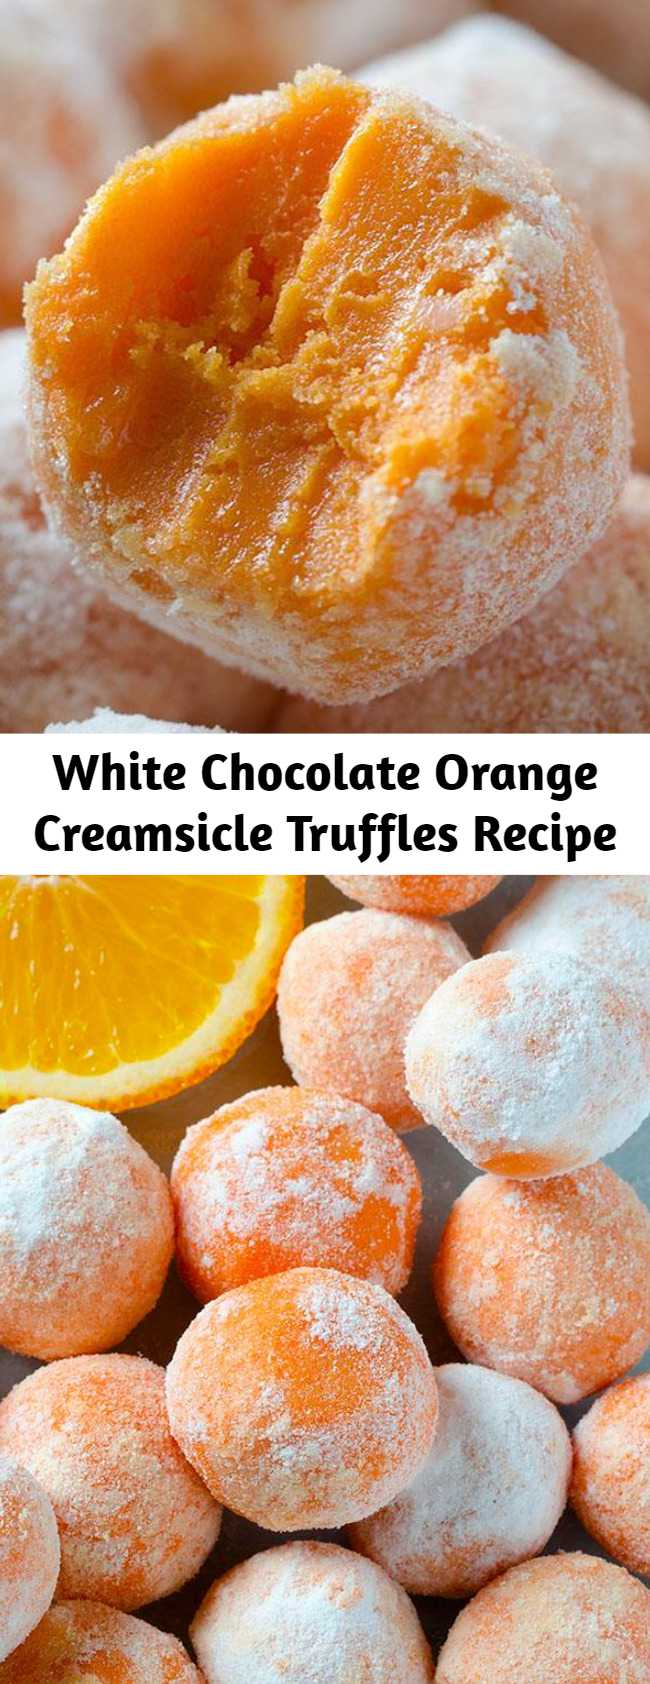 White Chocolate Orange Creamsicle Truffles Recipe - White Chocolate Orange Creamsicle Truffles are perfectly designed for summer, and are a tasty no bake dessert that simply melts in your mouth. This truffle recipe, made with creamy white chocolate, is a big win for orange lovers everywhere!